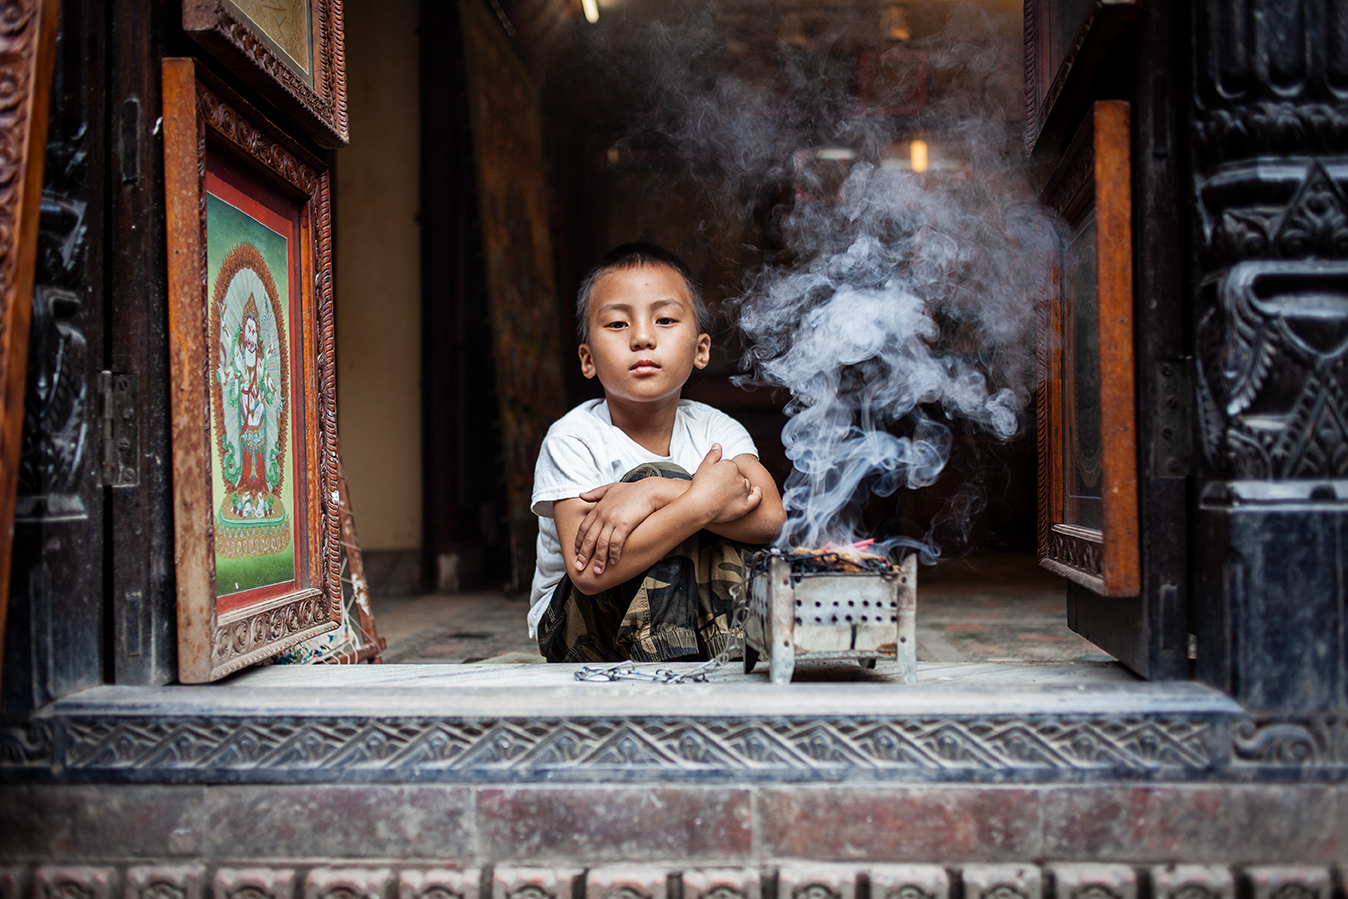 JUNGE |NEPAL | Contemporary Art Photography